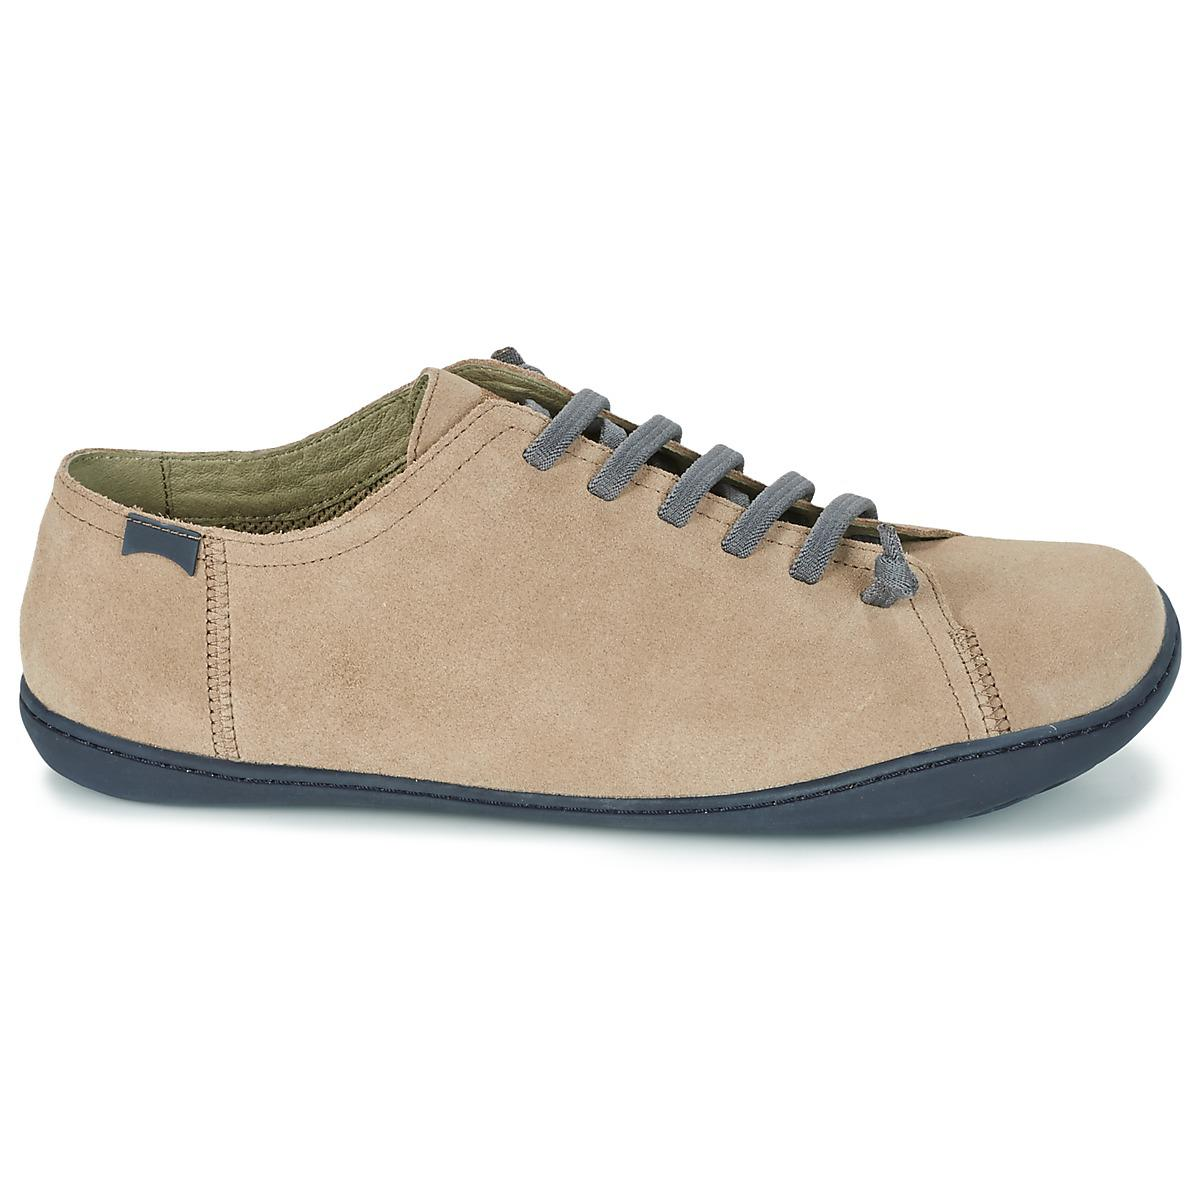 Camper Peu Camo Shoes in Beige (Natural) for Men